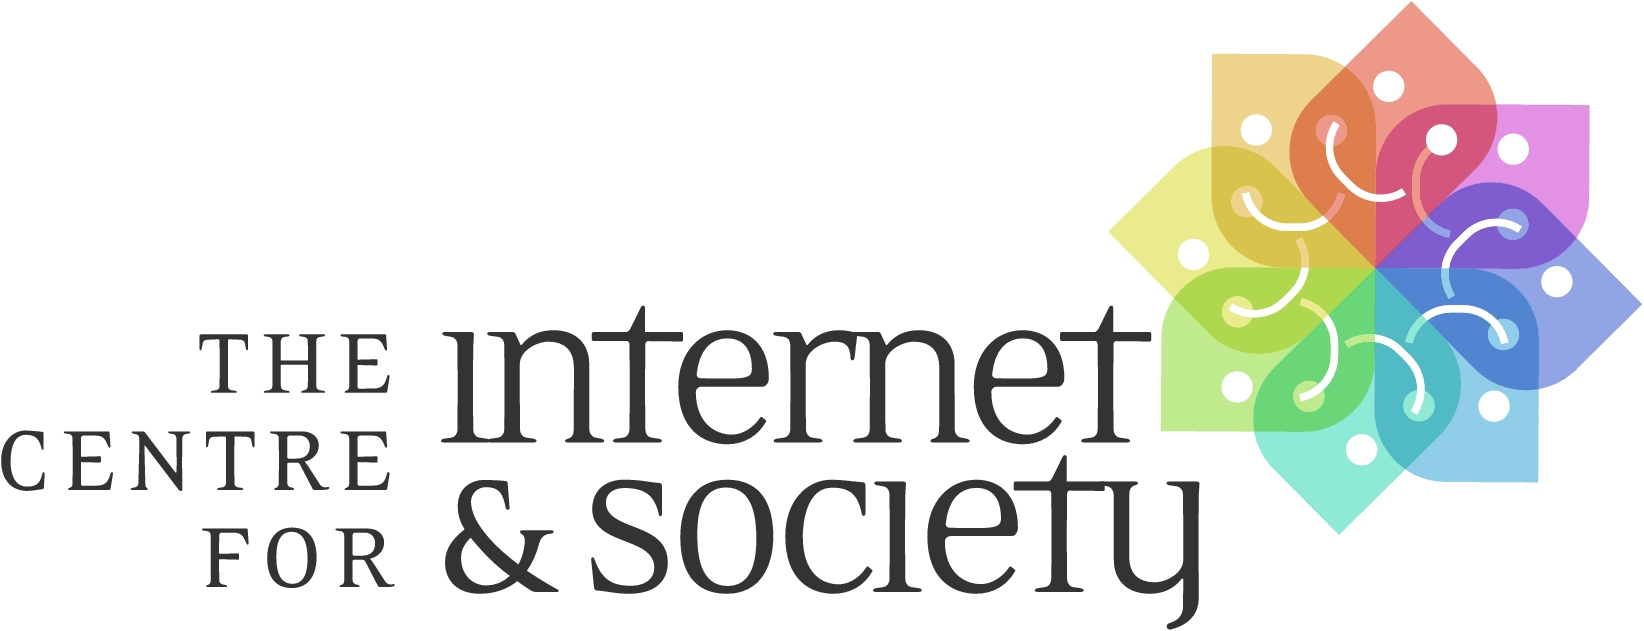 Center for Internet & Society